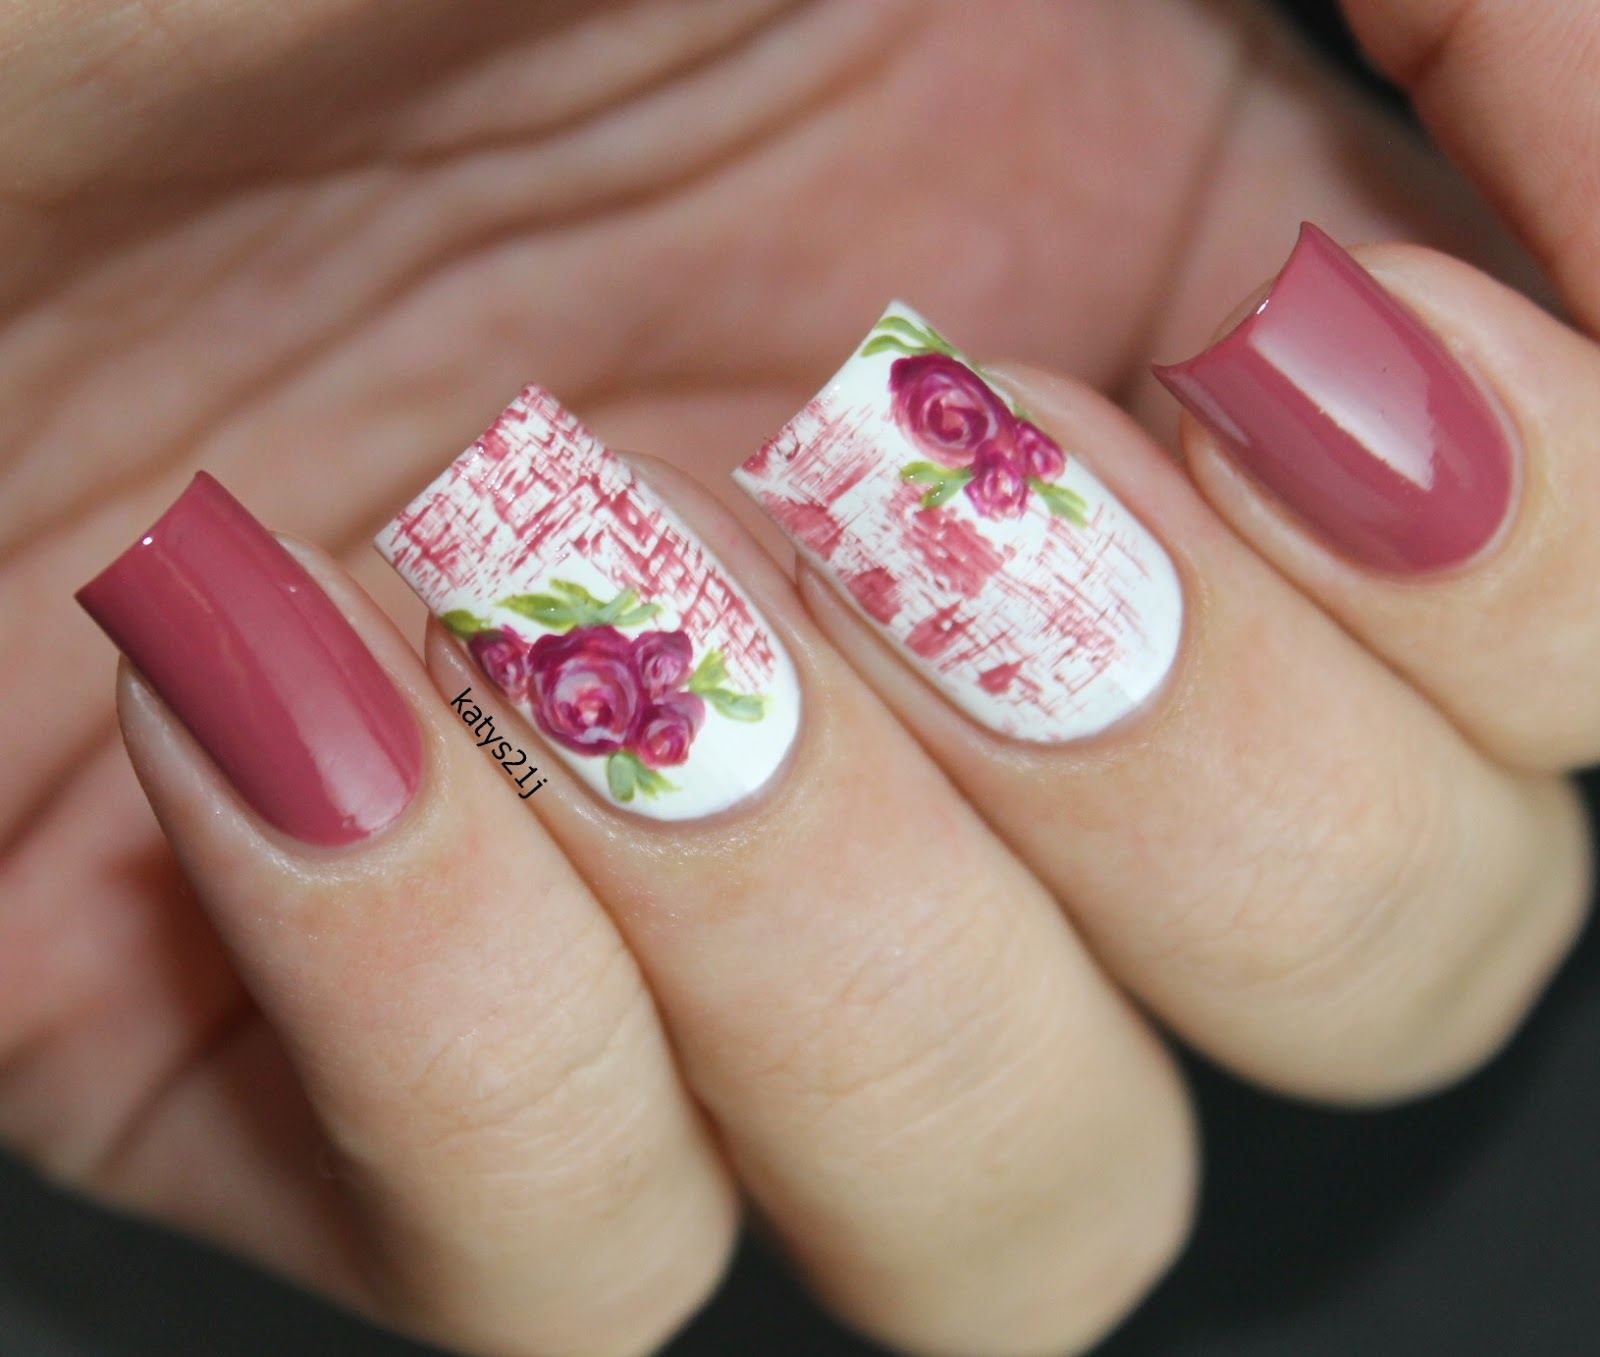 My Nail Art Journal Vintage Roses Nails Rosa Viejo Vogue Fantastic